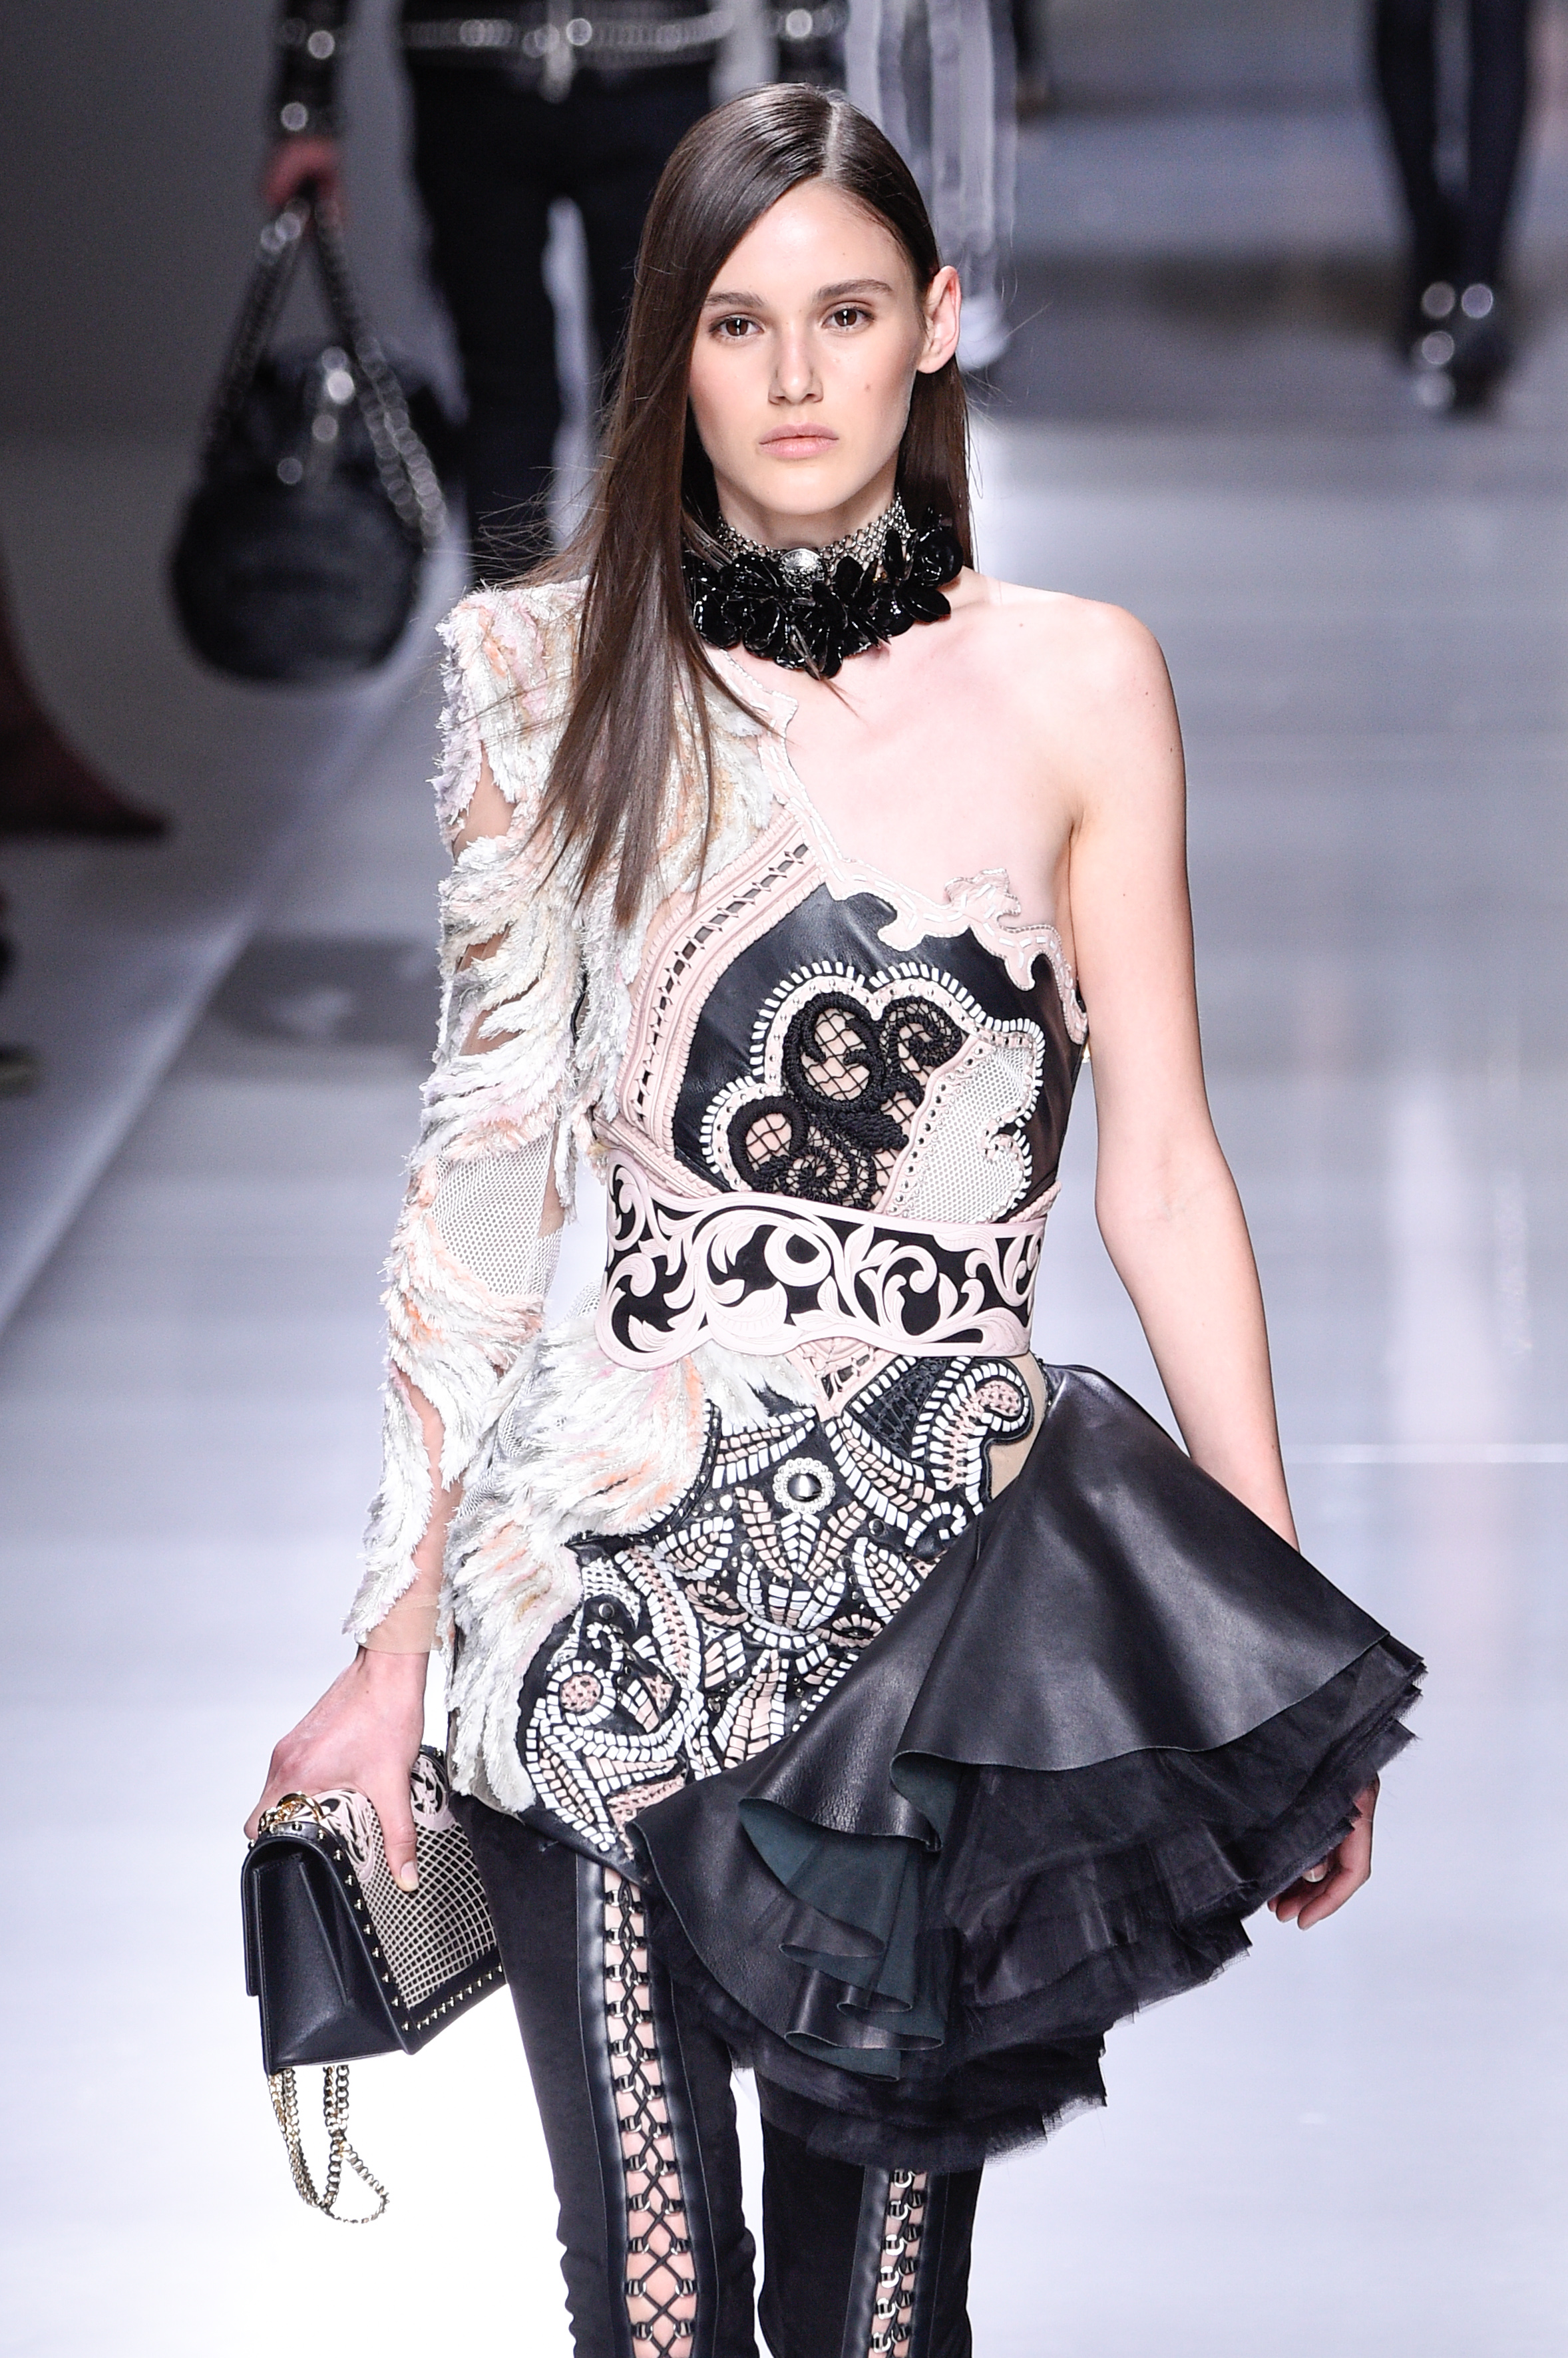 "<p>In a move to overshadow last week's spectacular season launch at <a href=""http://style.nine.com.au/2017/08/10/07/19/david-jones-spring-summer-2017"" target=""_blank"" draggable=""false"">David Jones</a> featuring Shanina Shaik, Bridget Malcolm, Jess Gomes and Jesinta Franklin, department store rival <a href=""https://www.myer.com.au/"" target=""_blank"">Myer</a> has cast rising star <a href=""http://style.nine.com.au/2017/08/15/12/32/forever-new-aleyna-fitzgerald"" target=""_blank"" draggable=""false"">AleynaFitzGerald</a> in tomorrow's runway reveal of the latest collections.<br /> <br /> Fresh from walking the runway for Balmain and Dior in Paris and promoting high street store Forever New, the 17-year-old will walk alongside Jennifer Hawkins, former Victoria's Secret runway star Elyse Taylor and Chantal Monaghan.<br /> <br /> ""For a model like Aleyna this is a special moment,"" says Doll Wright from Pricilla's Model Management. Wright helped the launch the career of in-demand Australian Julia Nobis.<br /> <br /> ""After winning Australia's Next Top Model Aleyna went straight to Paris,"" Wright says. ""While some of her friends and family won't know what it means to work for Balmain, they do know Myer.""<br /> <br /> Aleyna will take part in a showcase of Australian designers including Alex Perry, Toni Maticevski, Yeojin Bae, Acler, Anna Quan and We Are Kindred.<br /> <br /> In a new format for the department store the exclusive event will be held at a private residence in South Coogee before an evening celebration for the Insta-set.</p> <p><em>Image: Aleyna Fitzgerald walking for Balmain in Paris in June.<br /> </em> <br /> <br /> <br /> </p>"